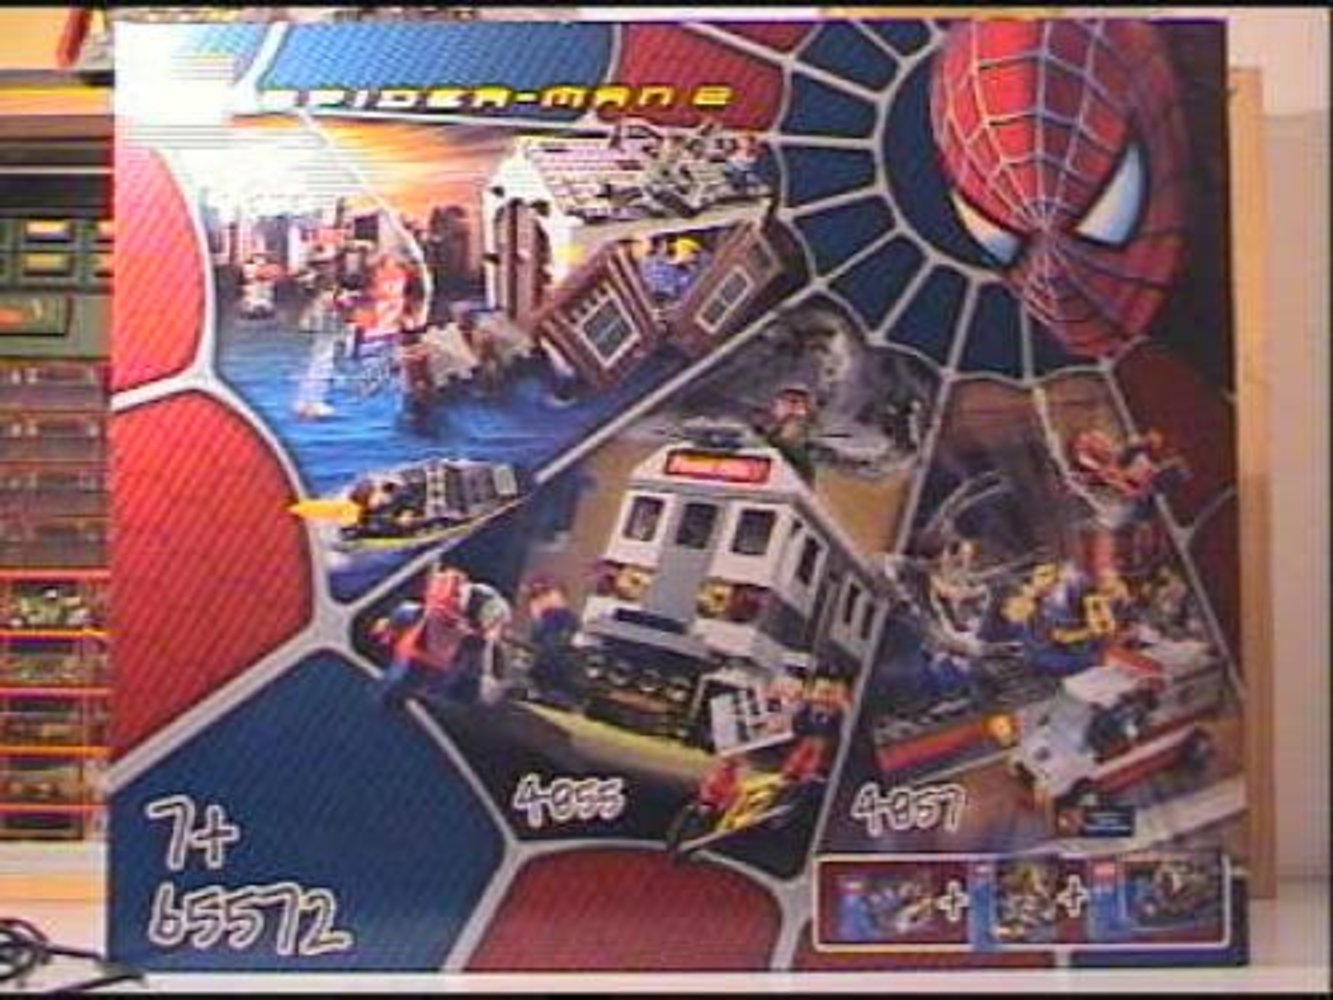 Spider-Man Co-Pack